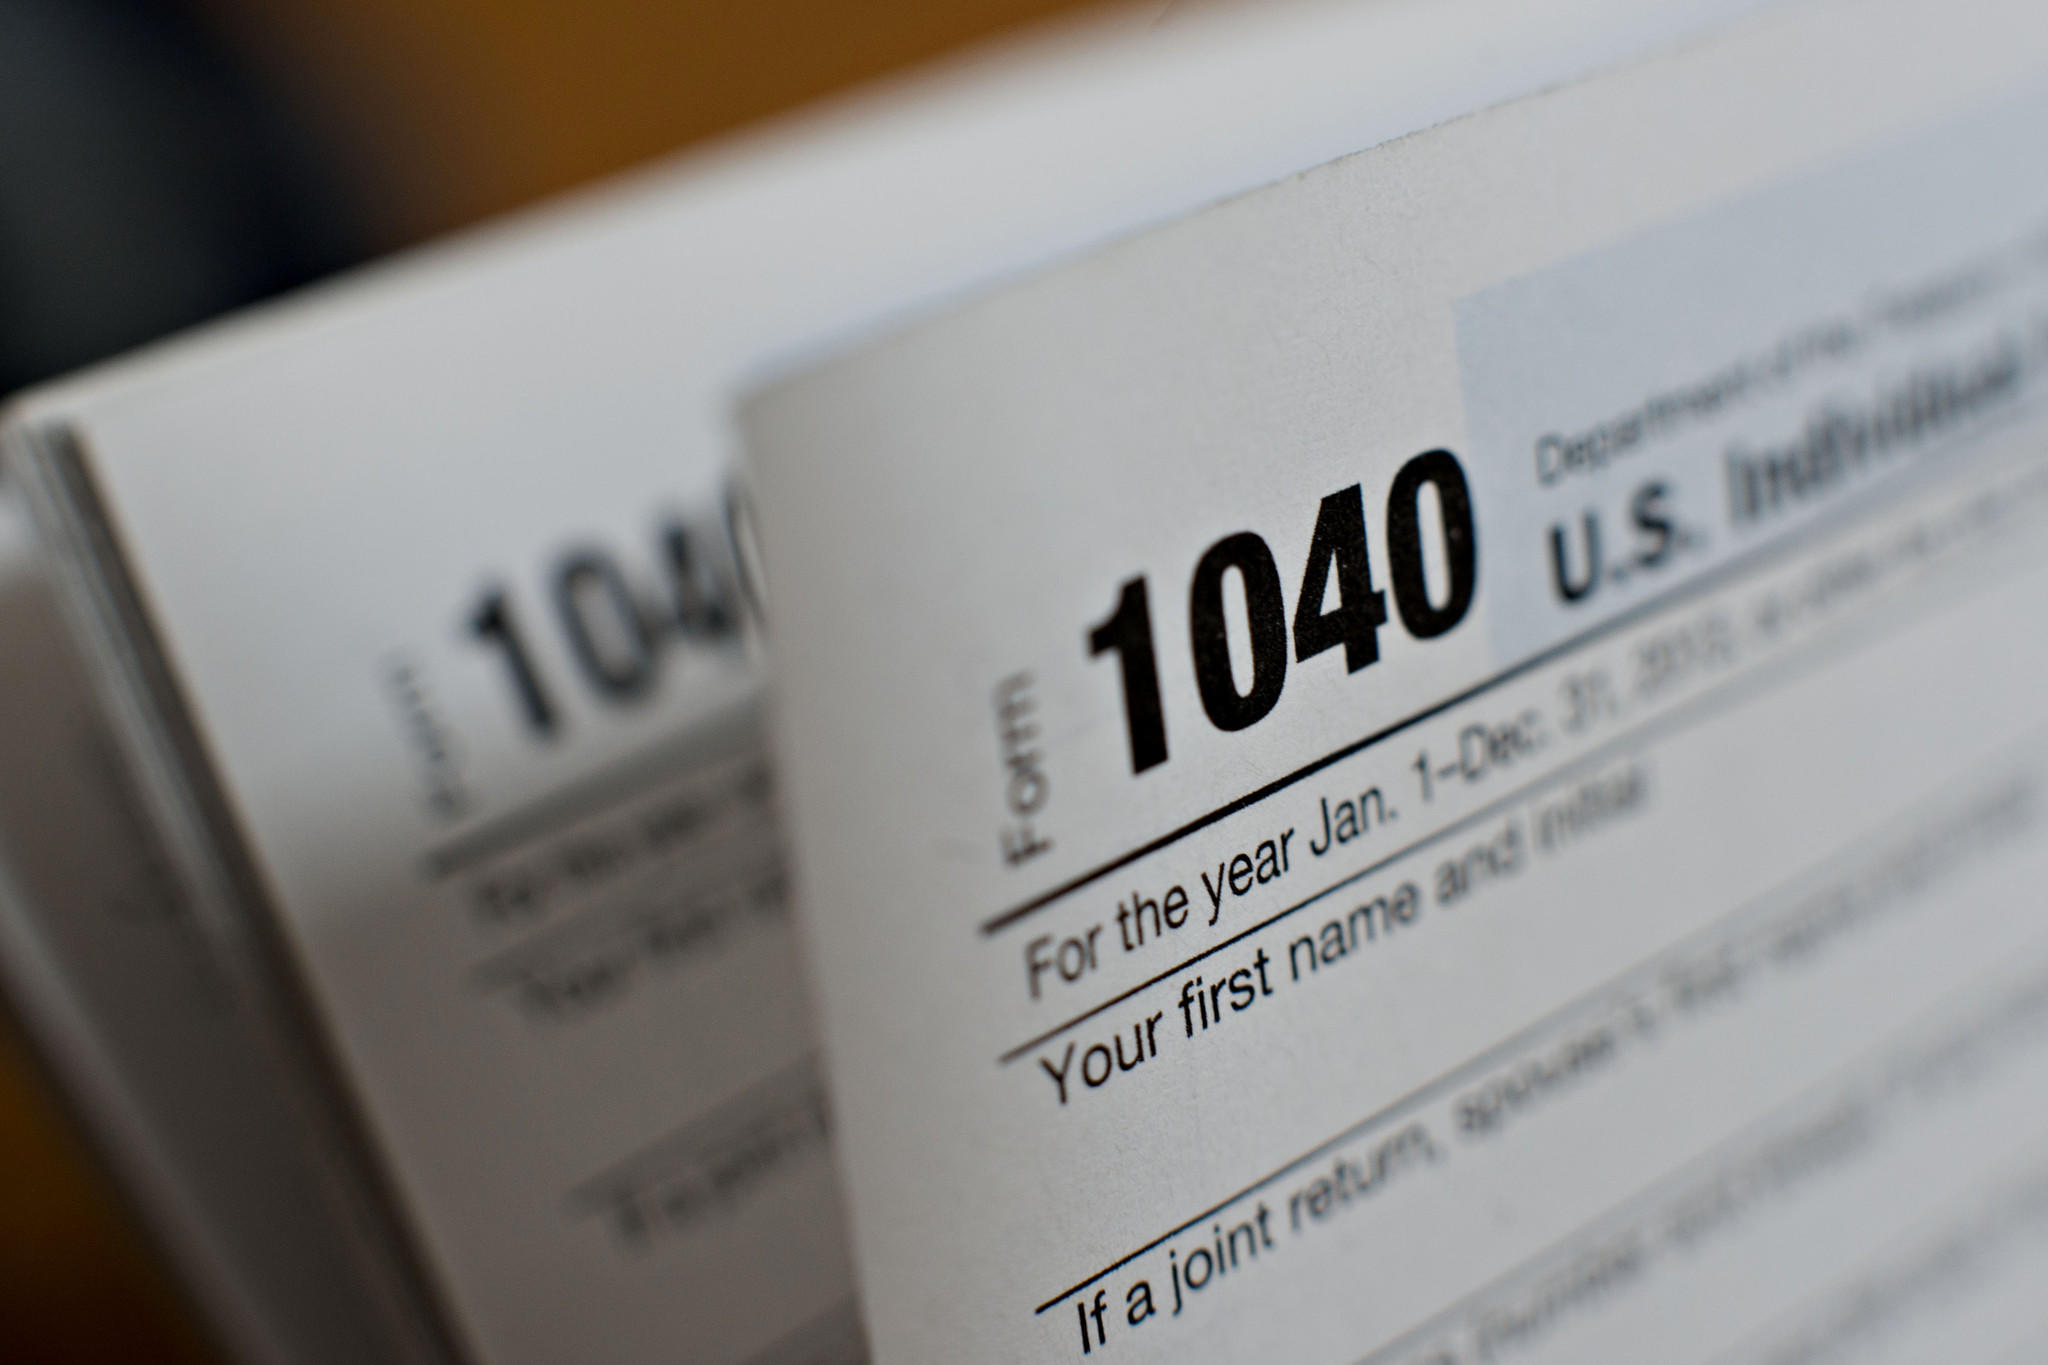 Irs audits womans taxes finds she overpaid tribunedigital us department of the treasury internal revenue service irs 1040 individual income tax forms falaconquin